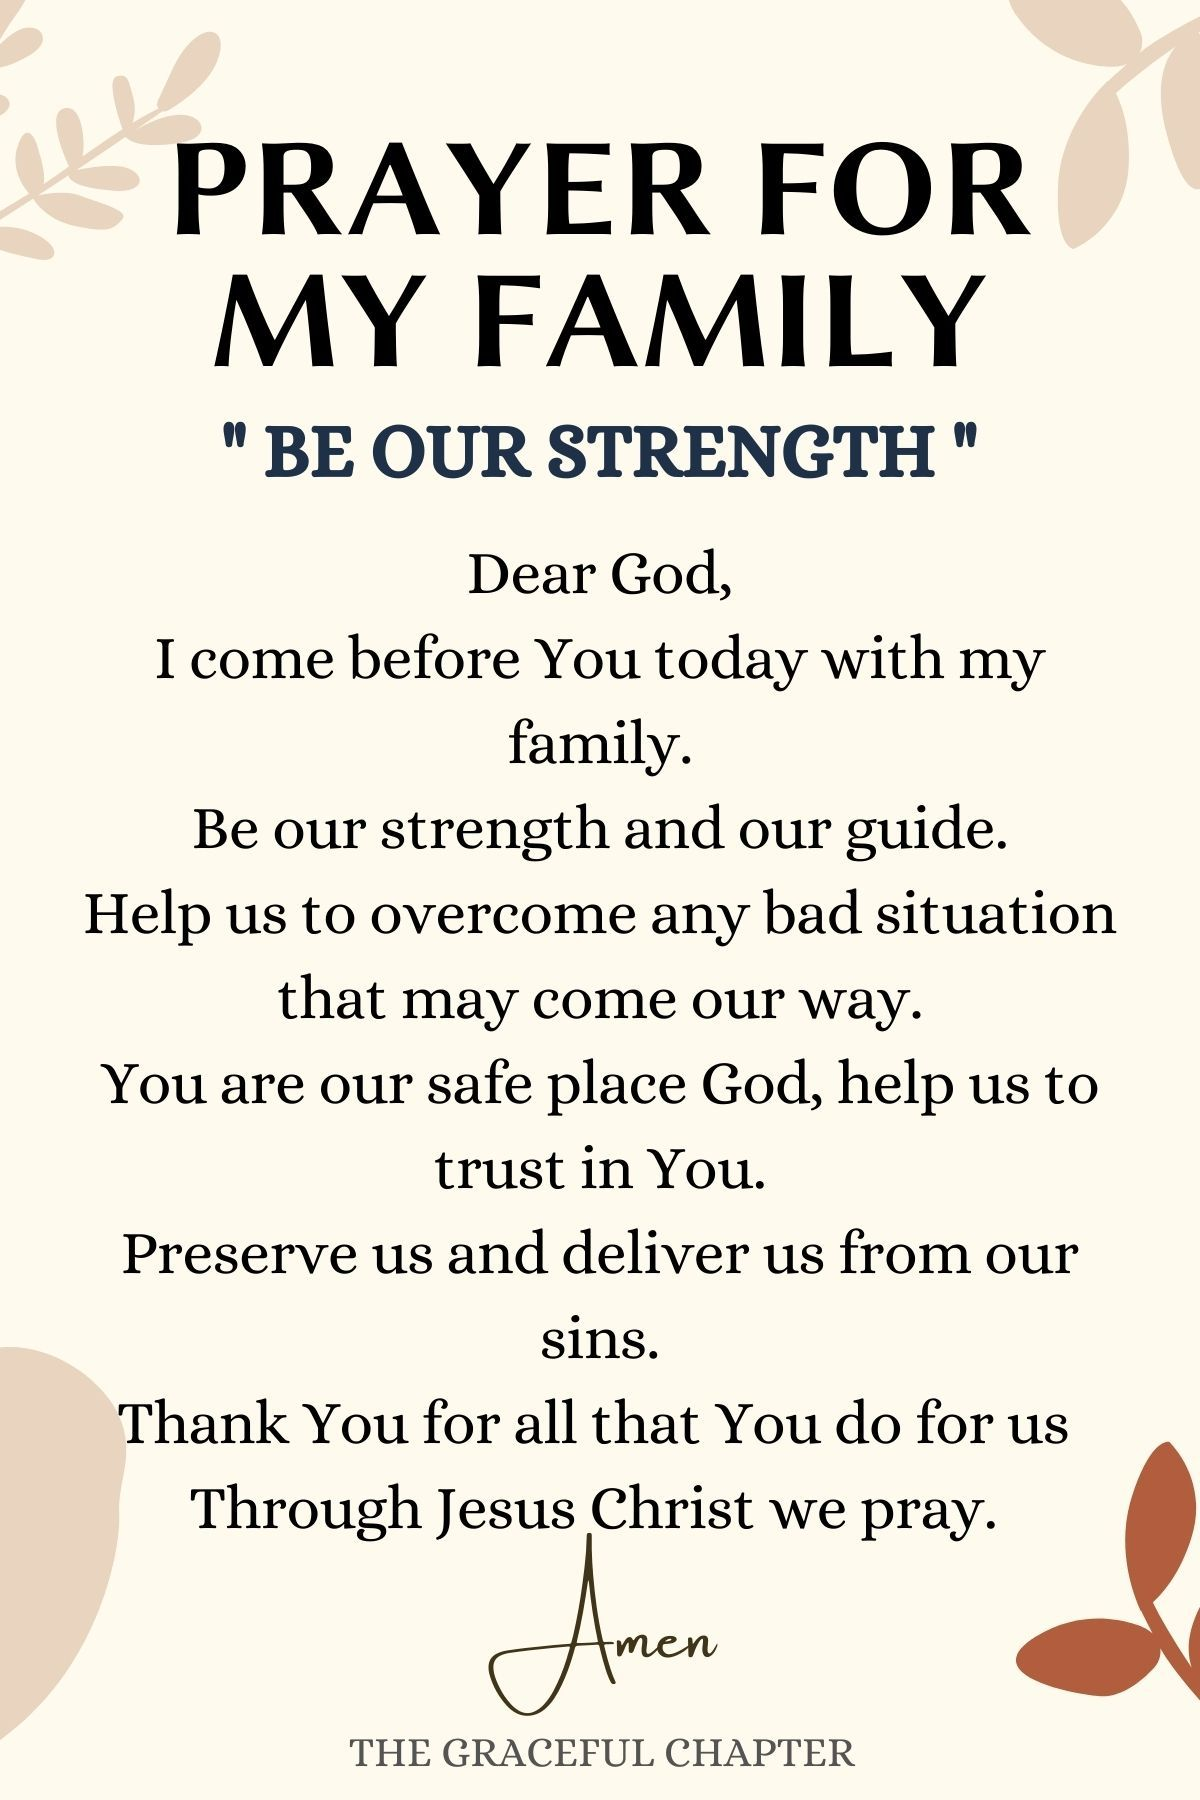 8 Powerful Prayers For Your Family - The Graceful Chapter